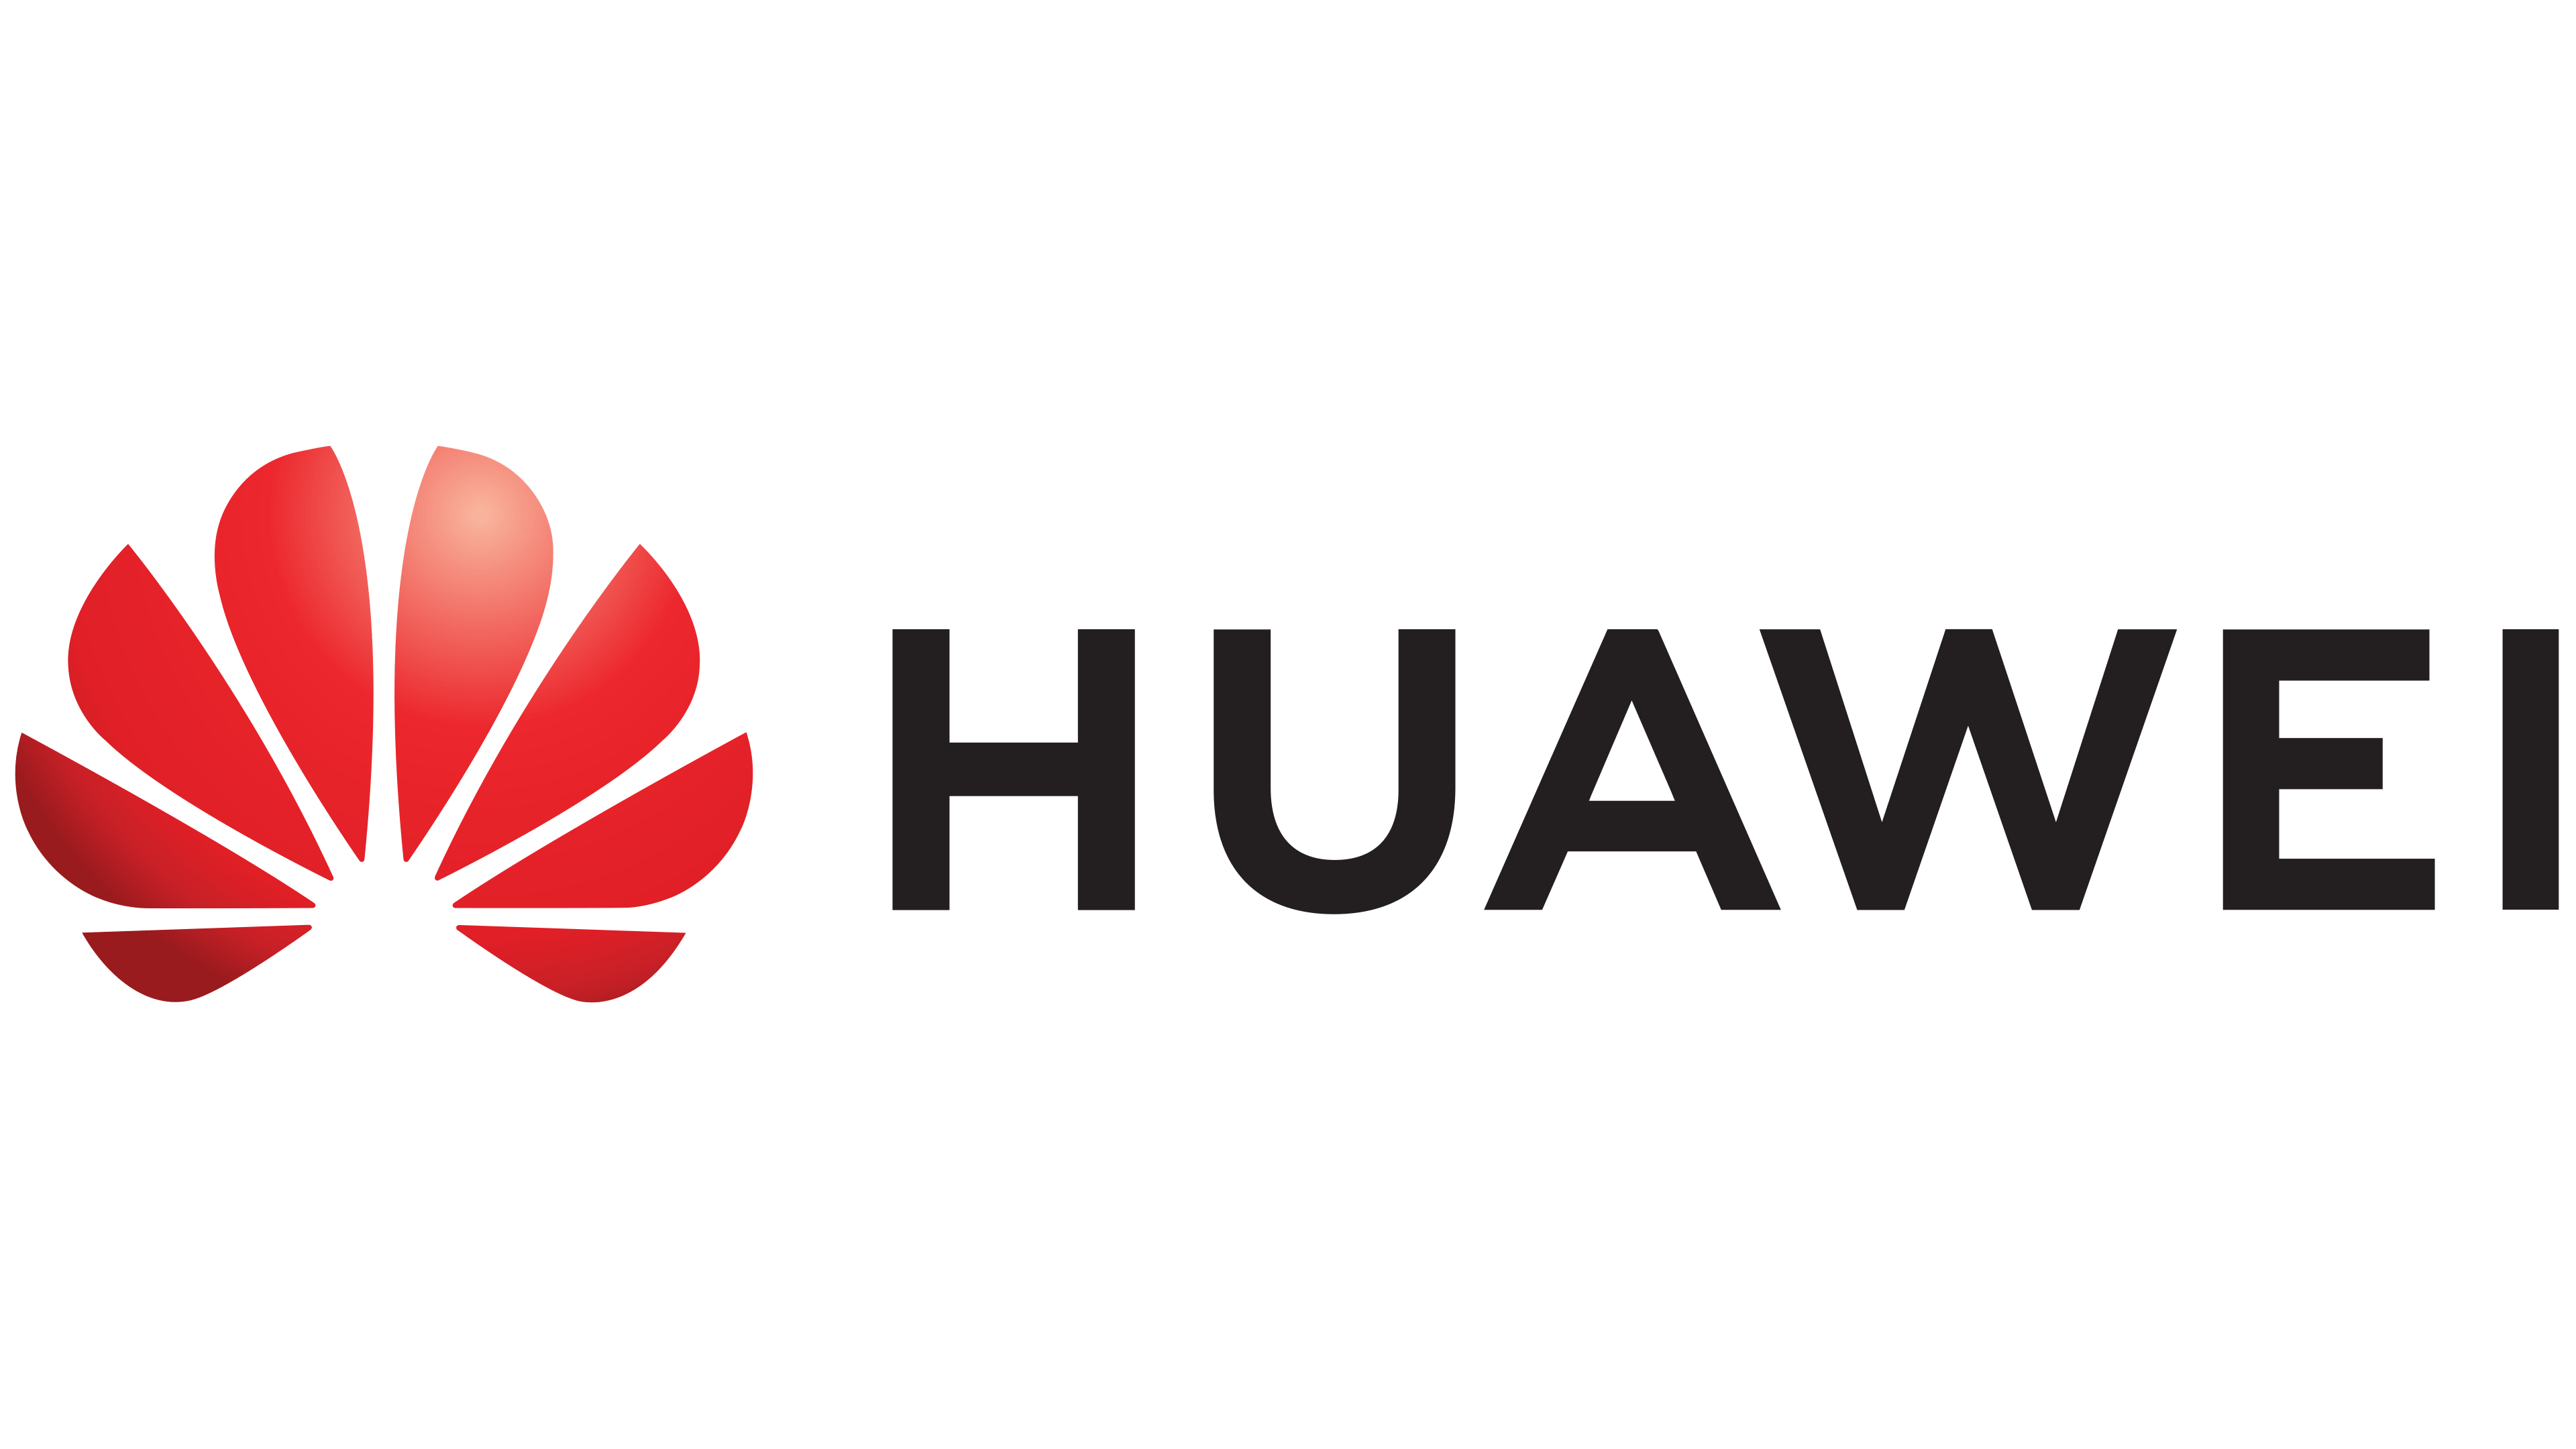 Huawei Logo | The most famous brands and company logos in ...